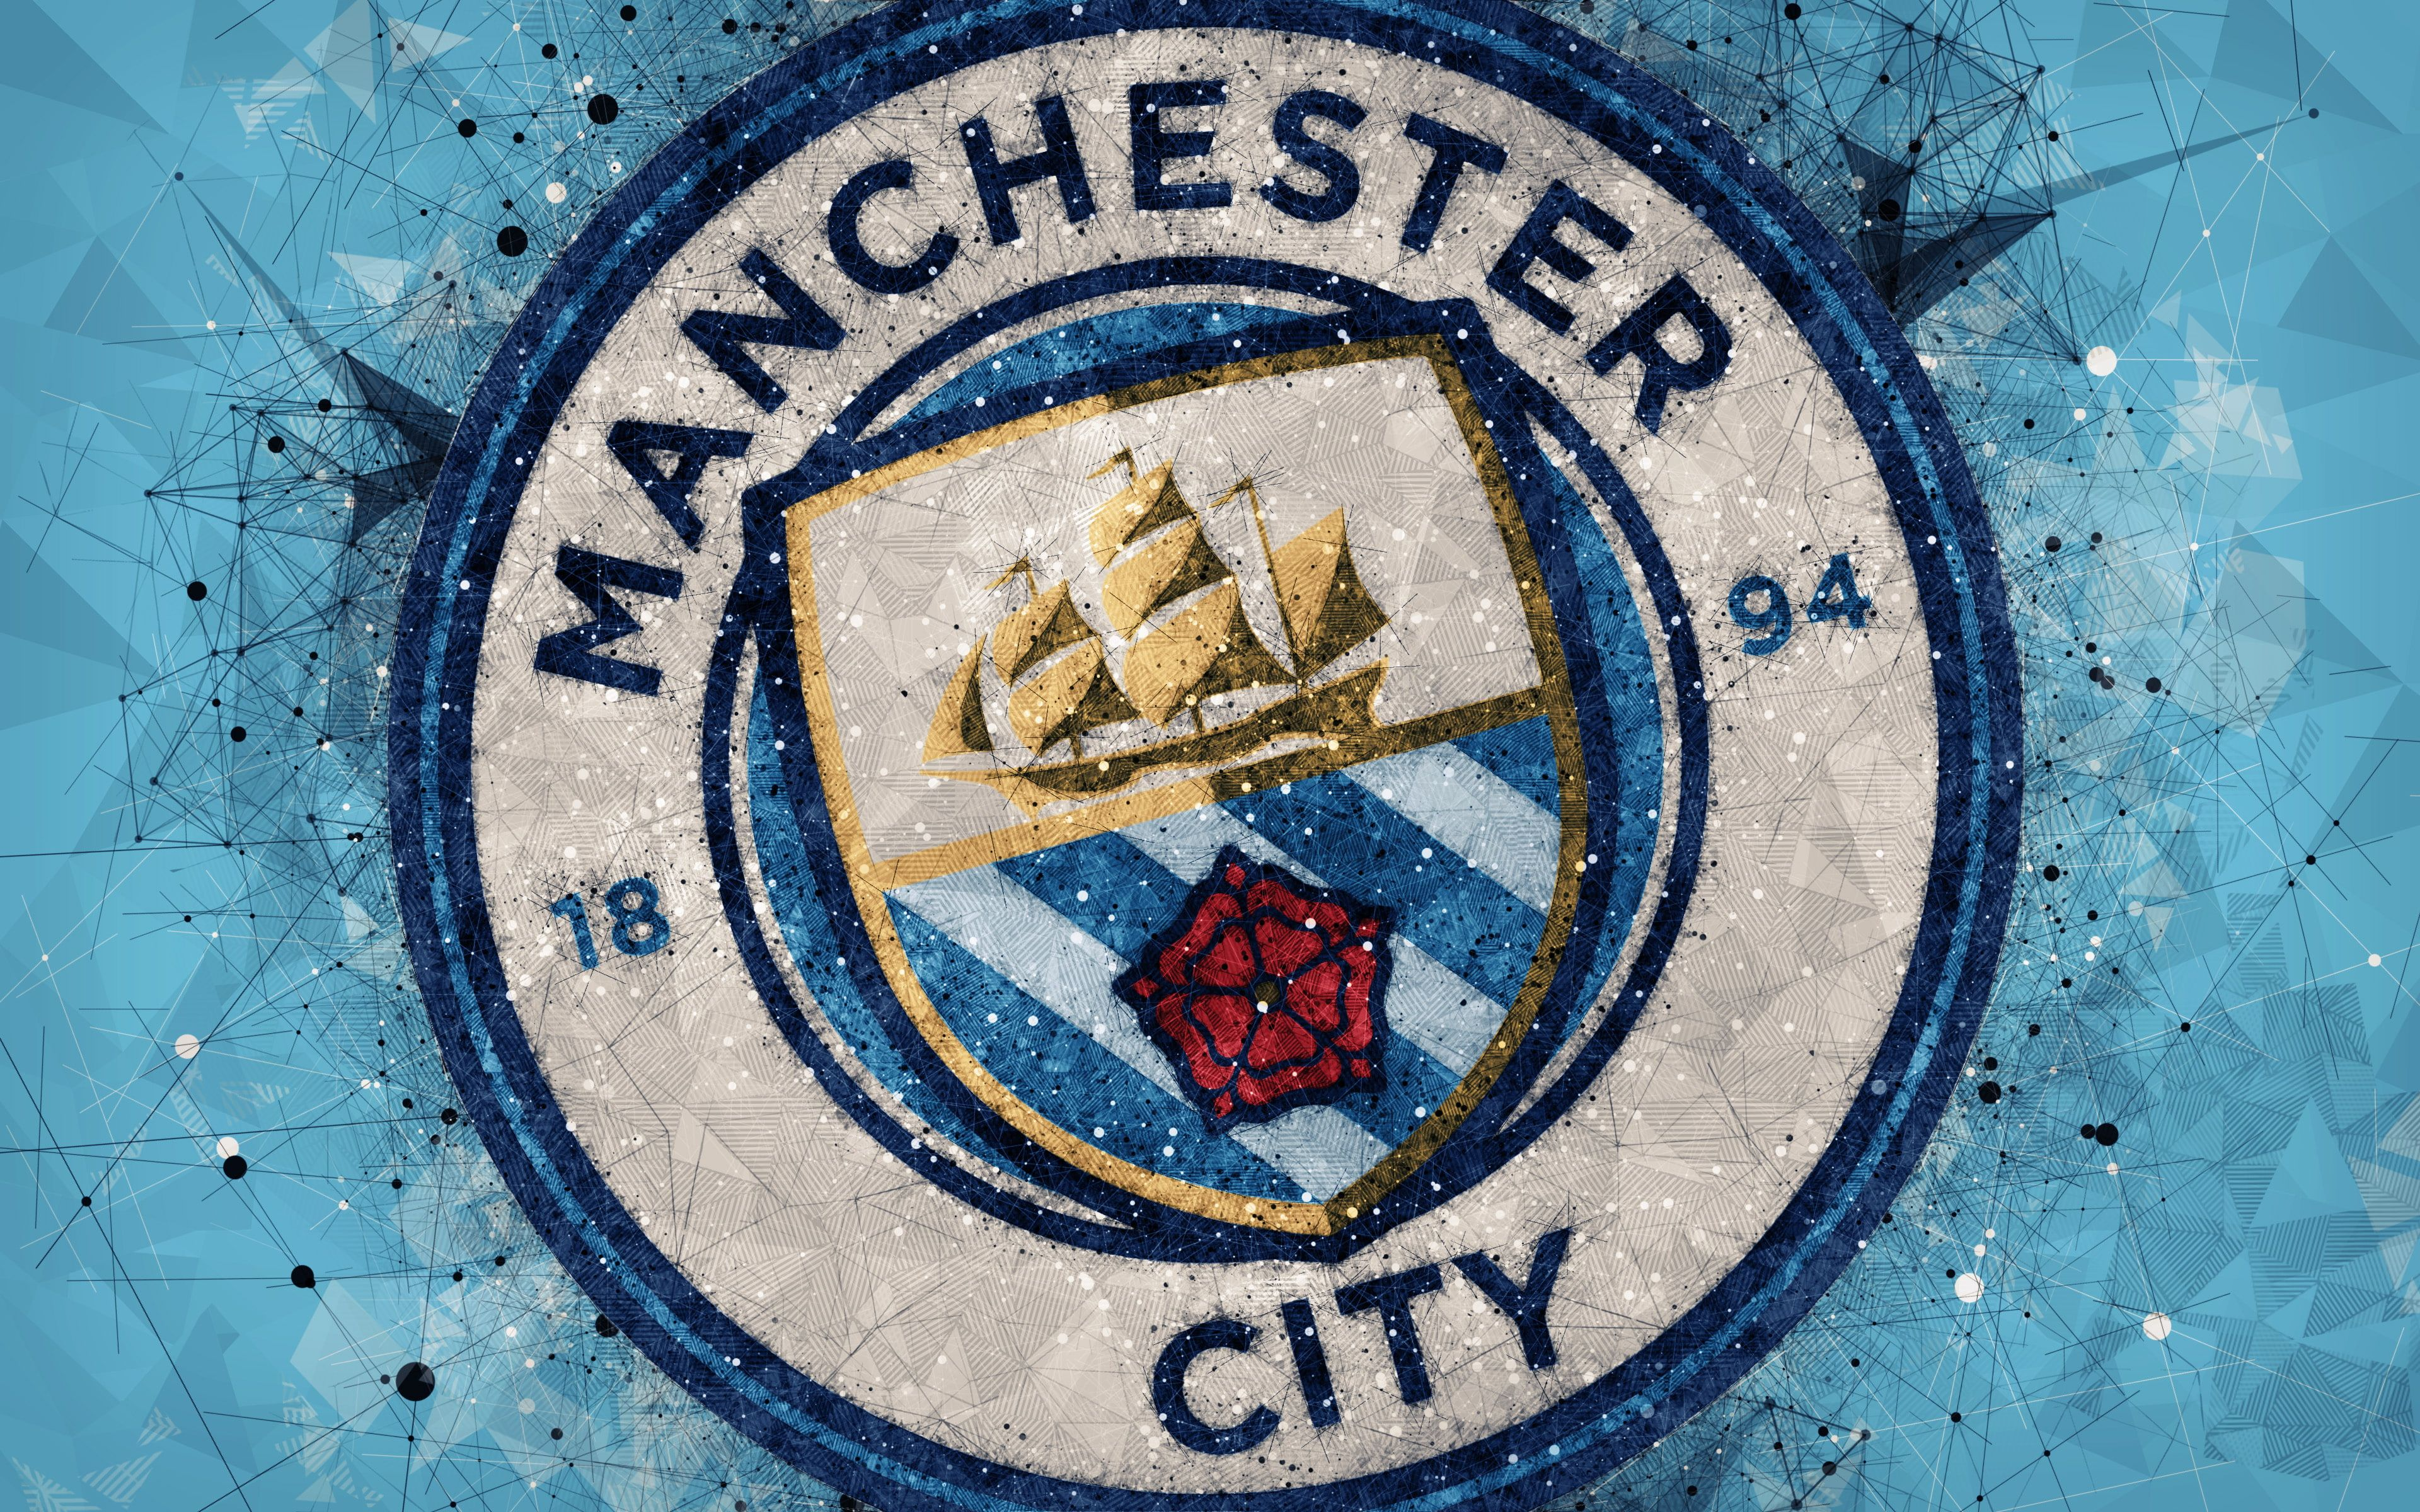 Pin On City Wallpaper